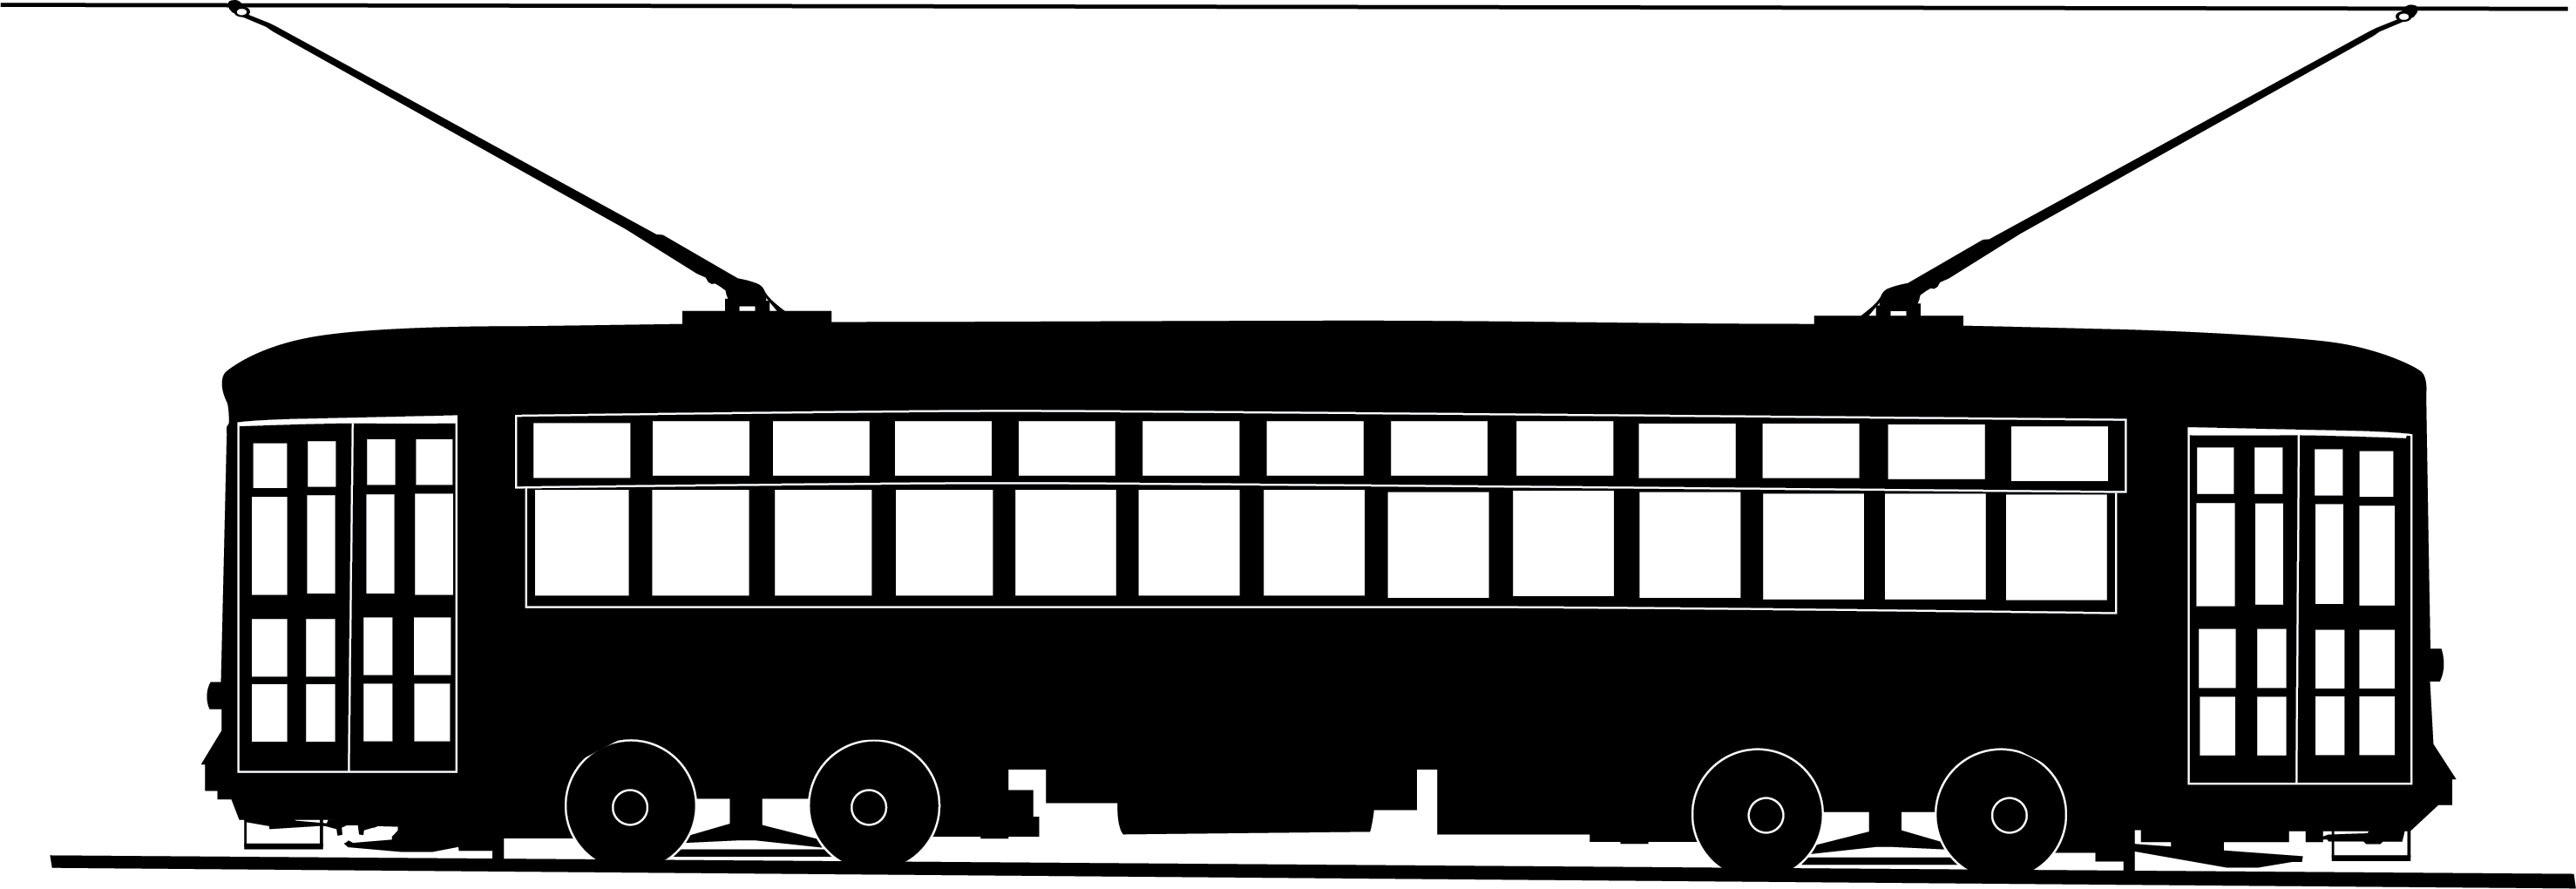 Orleans clipart. New streetcar trolley graphic